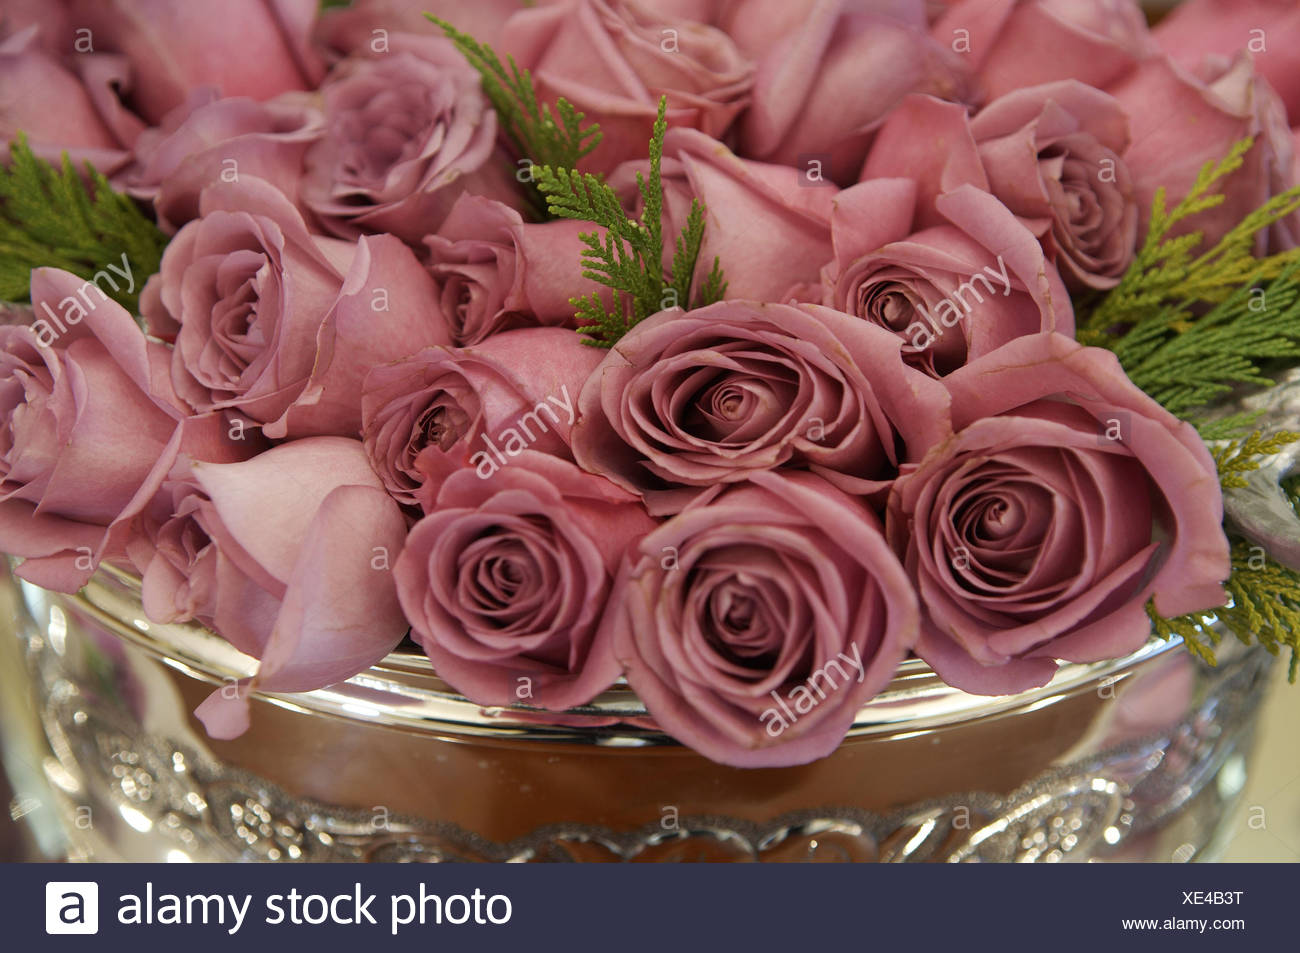 Silver Vase With Dusky Pink Roses And Cypress Leaves Stock Photo